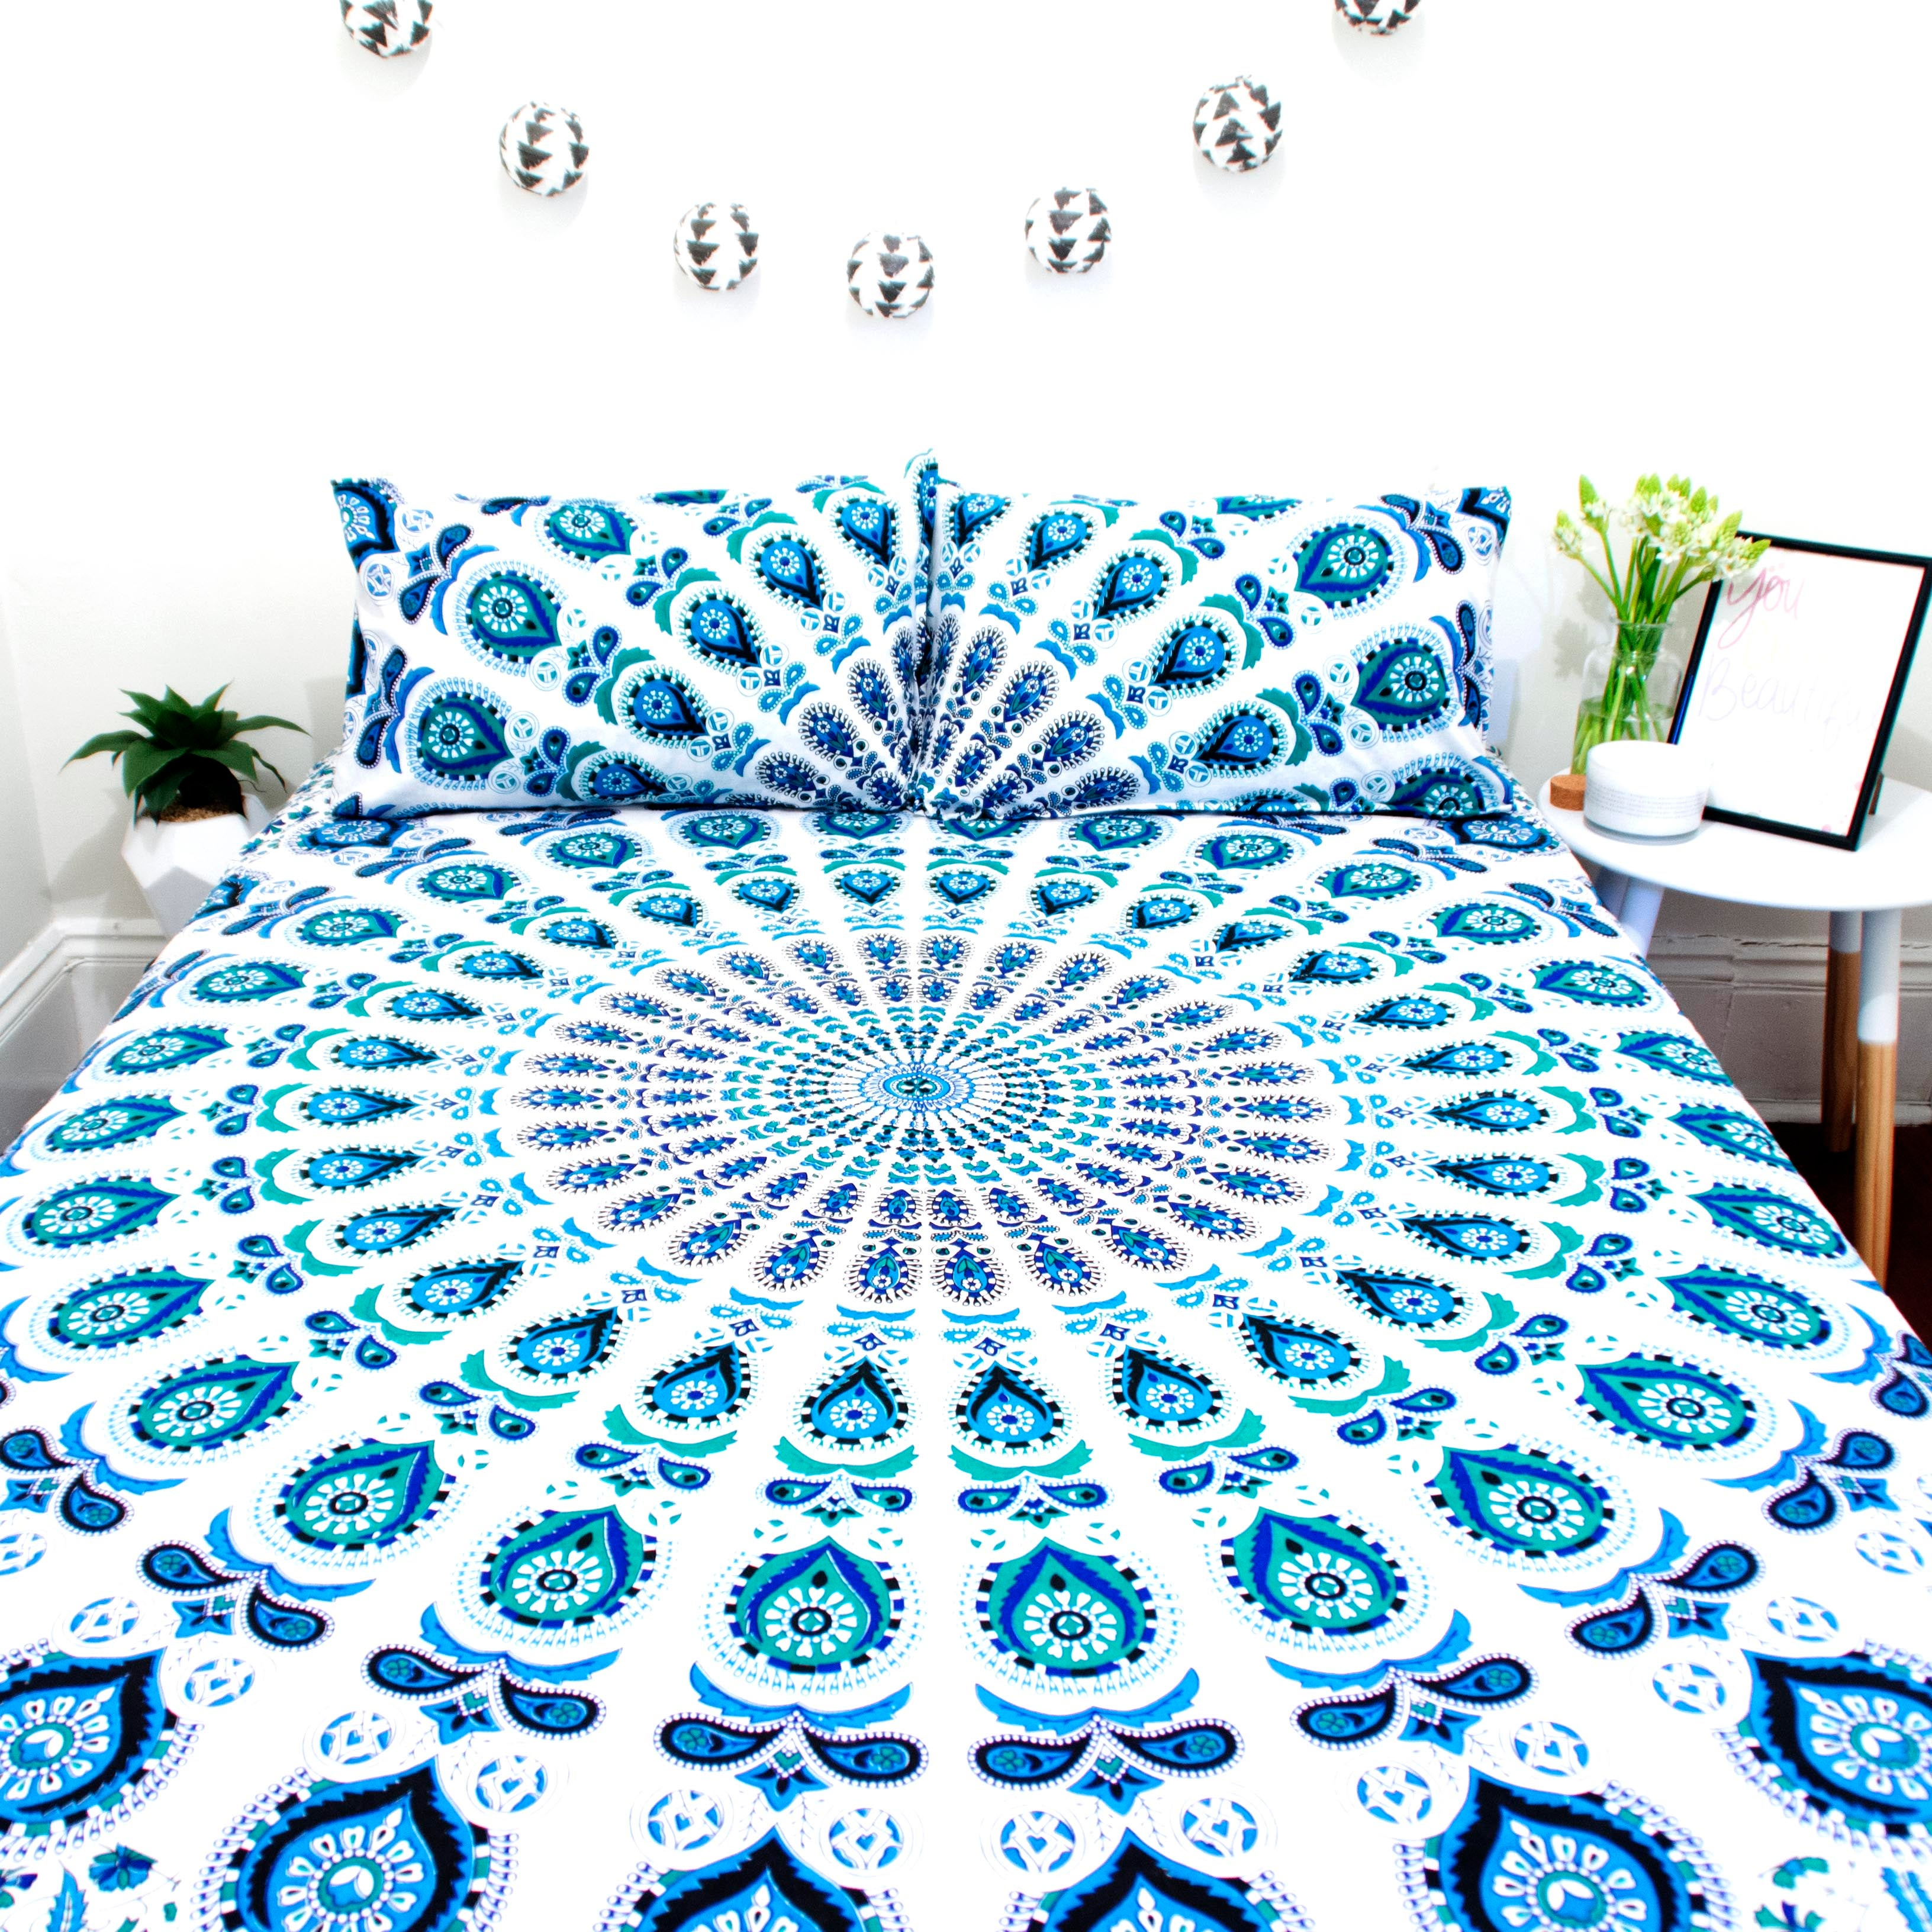 Boho Bedding Australia Blue And Teal Doona Set Marked Down From 110 Now